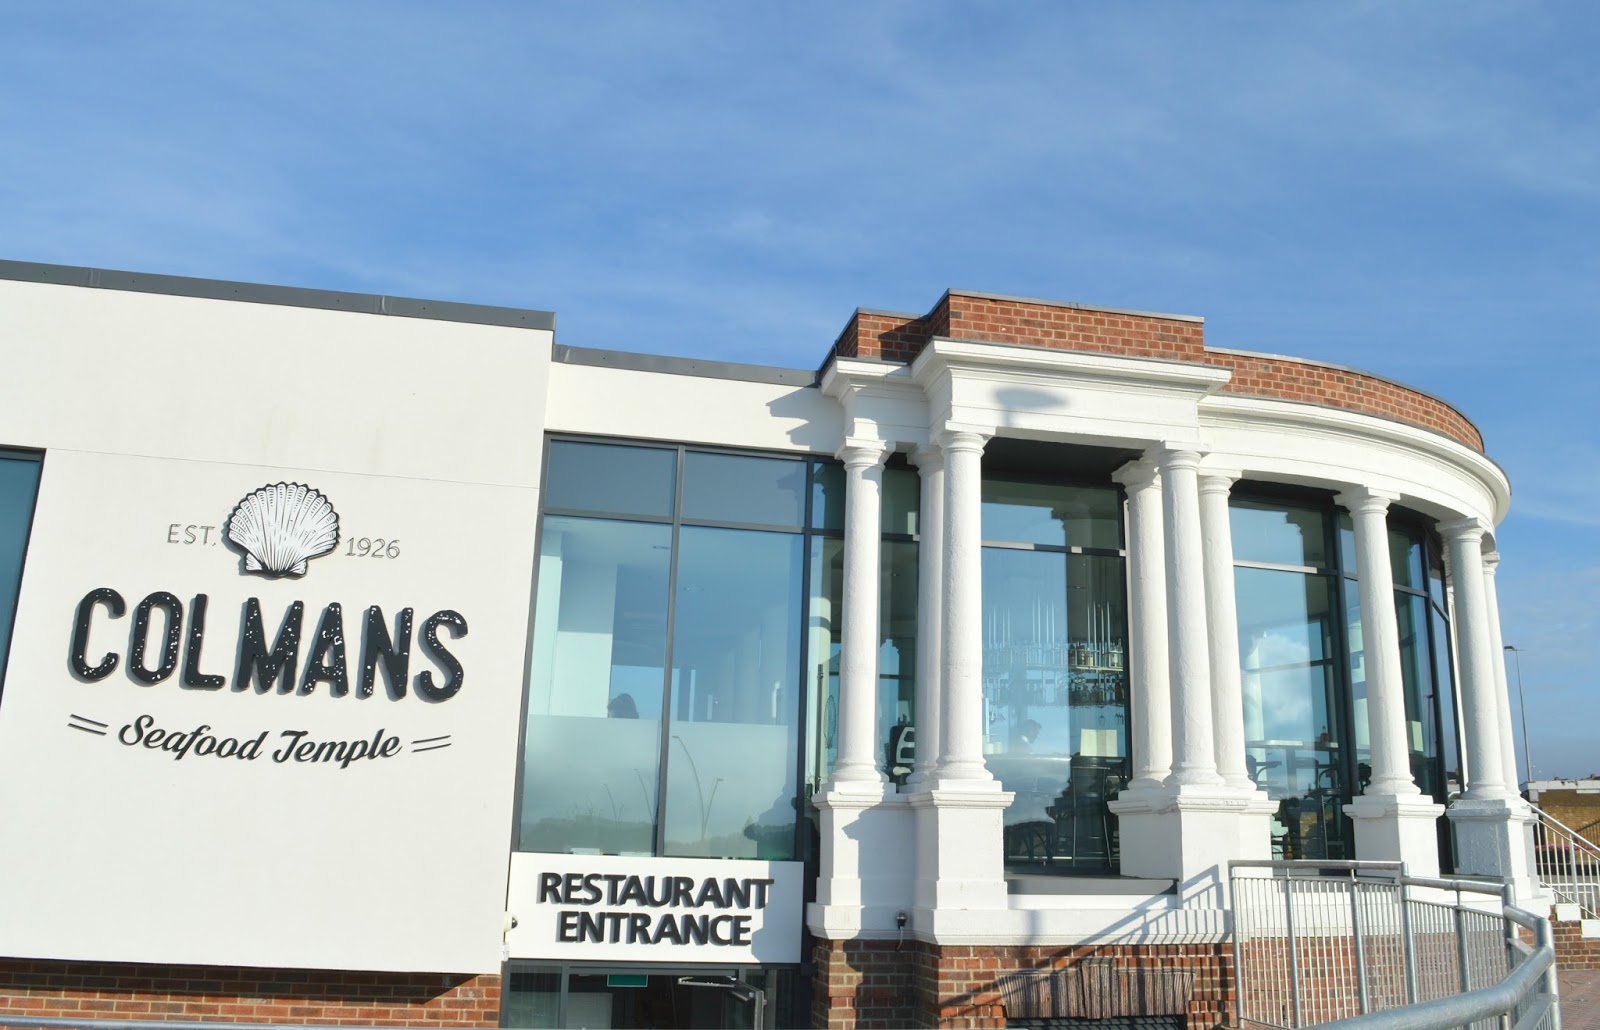 Colmans Seafood Temple, South Shields - Gandhis Temple